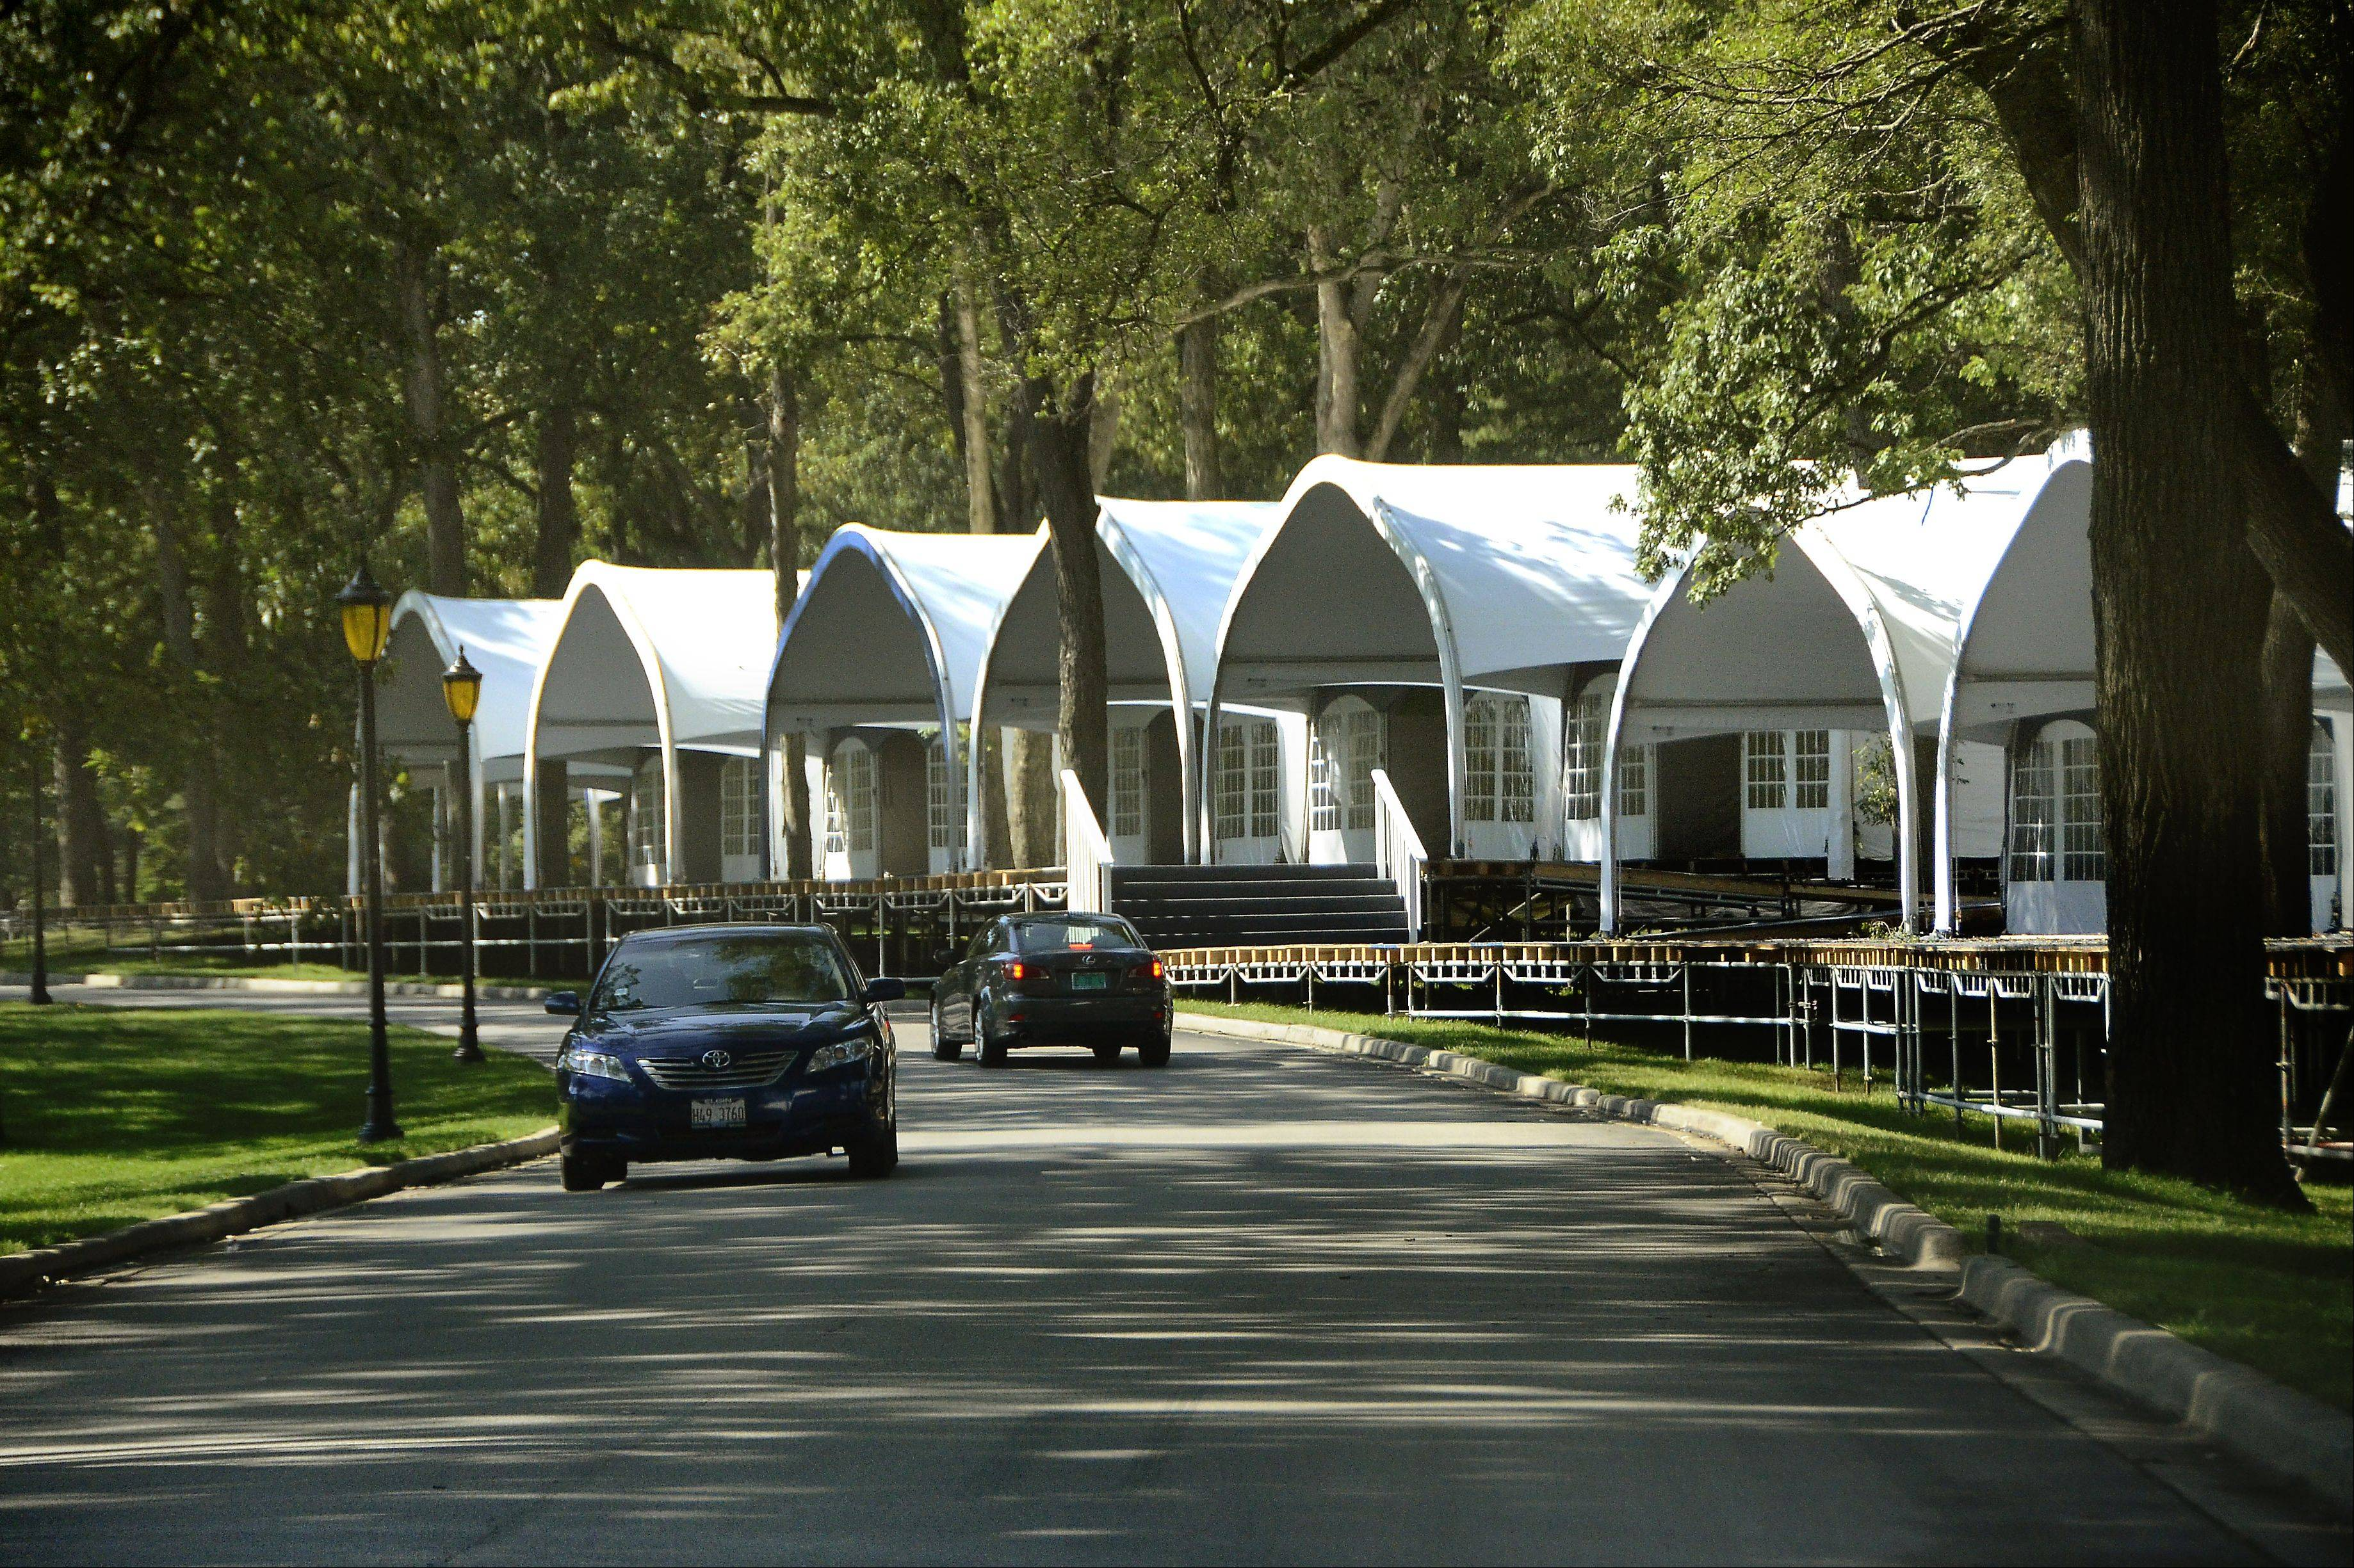 Seventy-six corporate hospitality tents have been built at Medinah Country Club in preparation for the Ryder Cup next month.